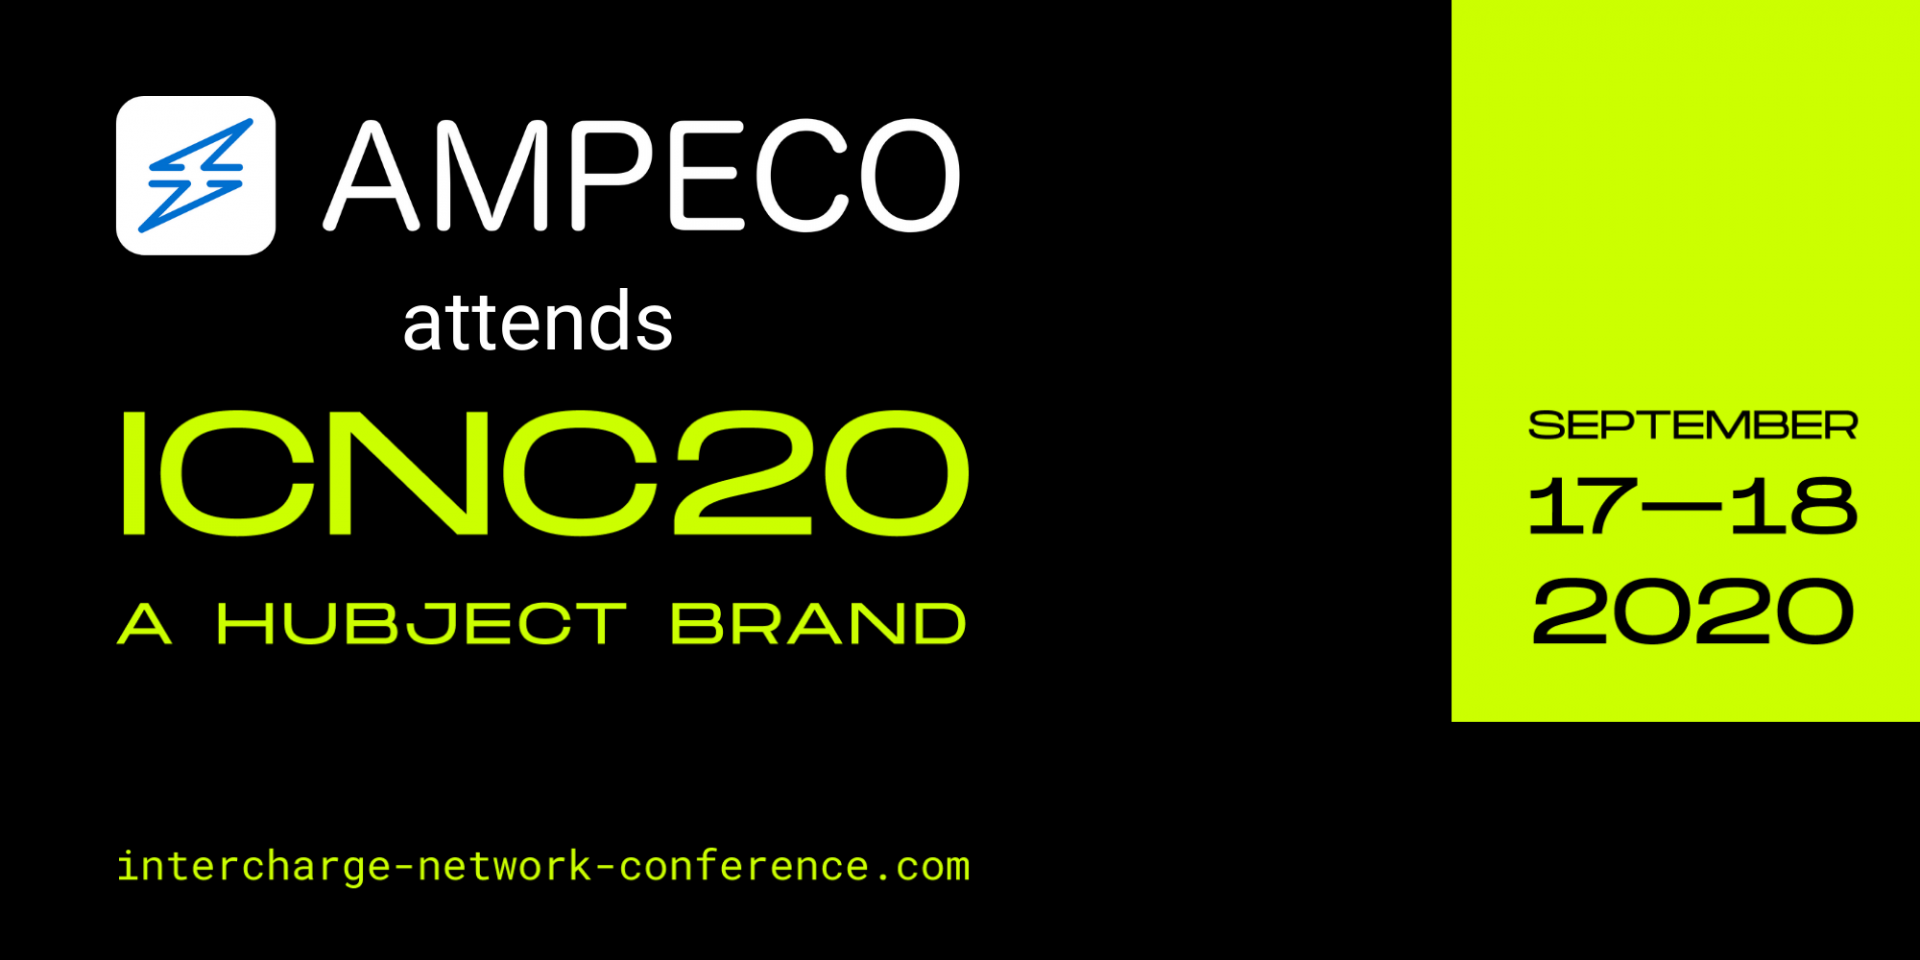 Meet AMPECO at InterCharge Network Conference(ICNC) 2020 in Berlin